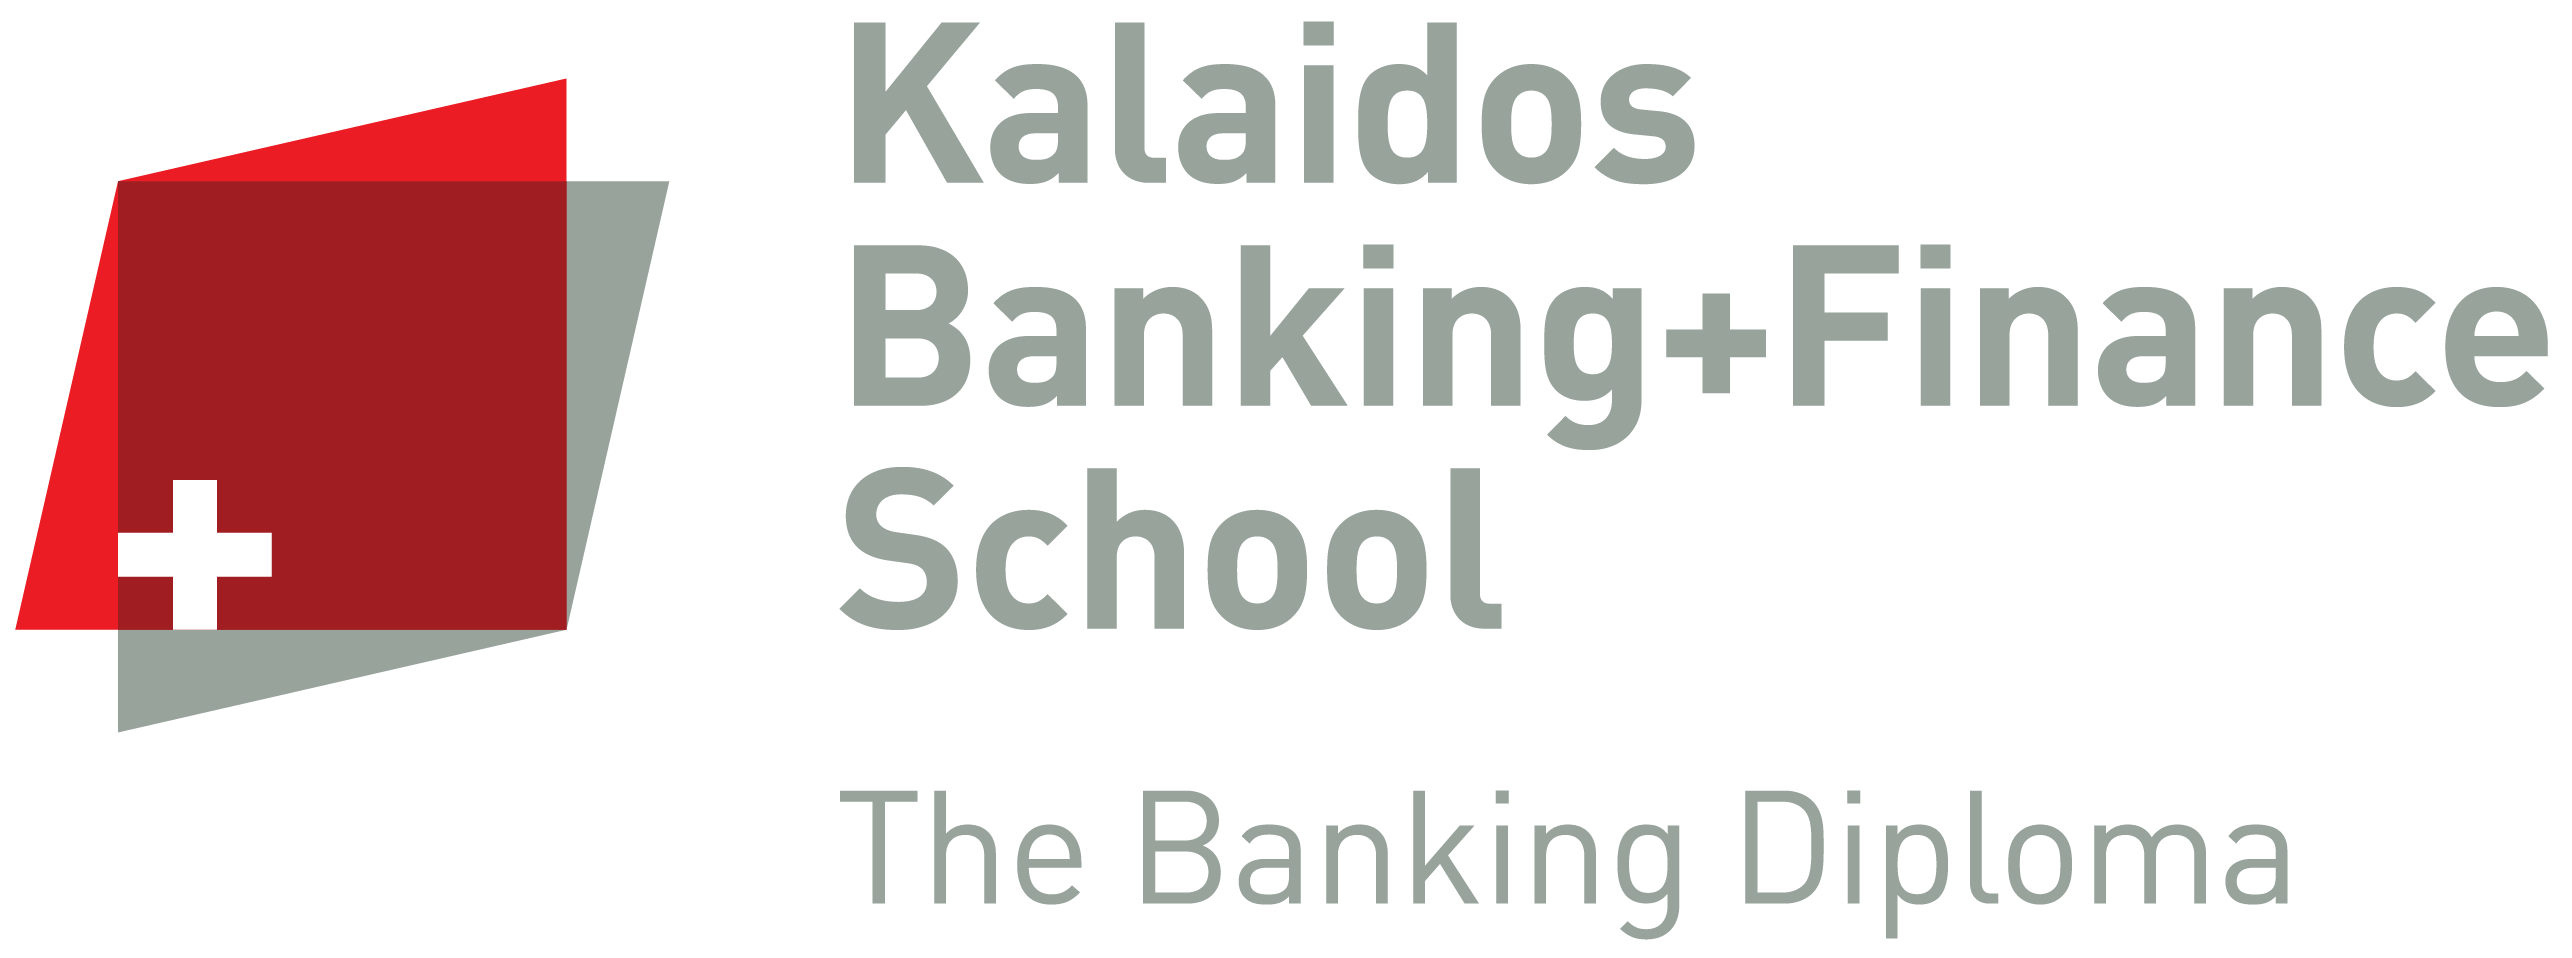 Kalaidos Banking+Finance School